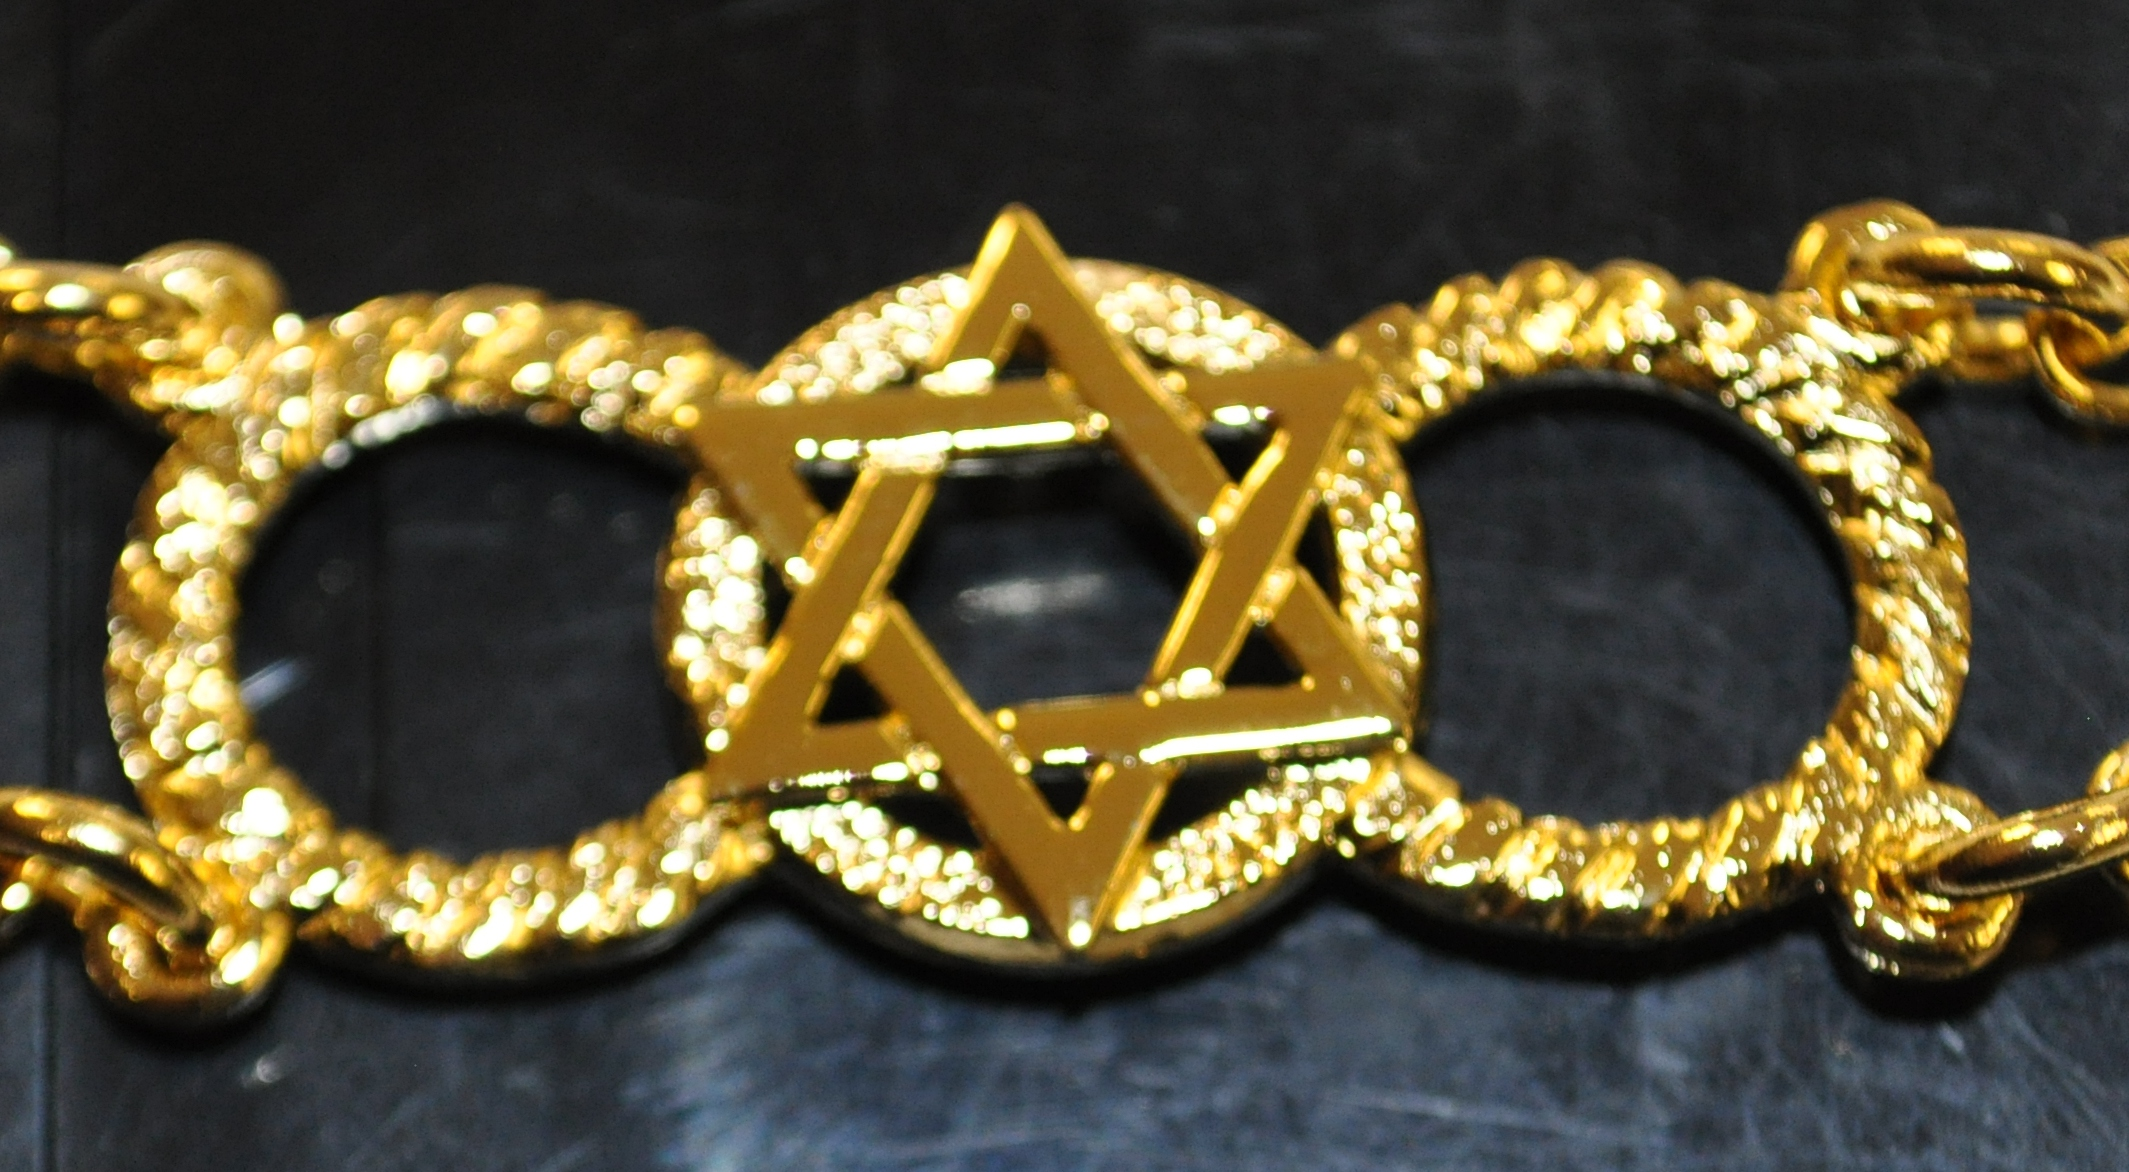 Craft Chain Metalwork - Star of David with OOO - Gilt